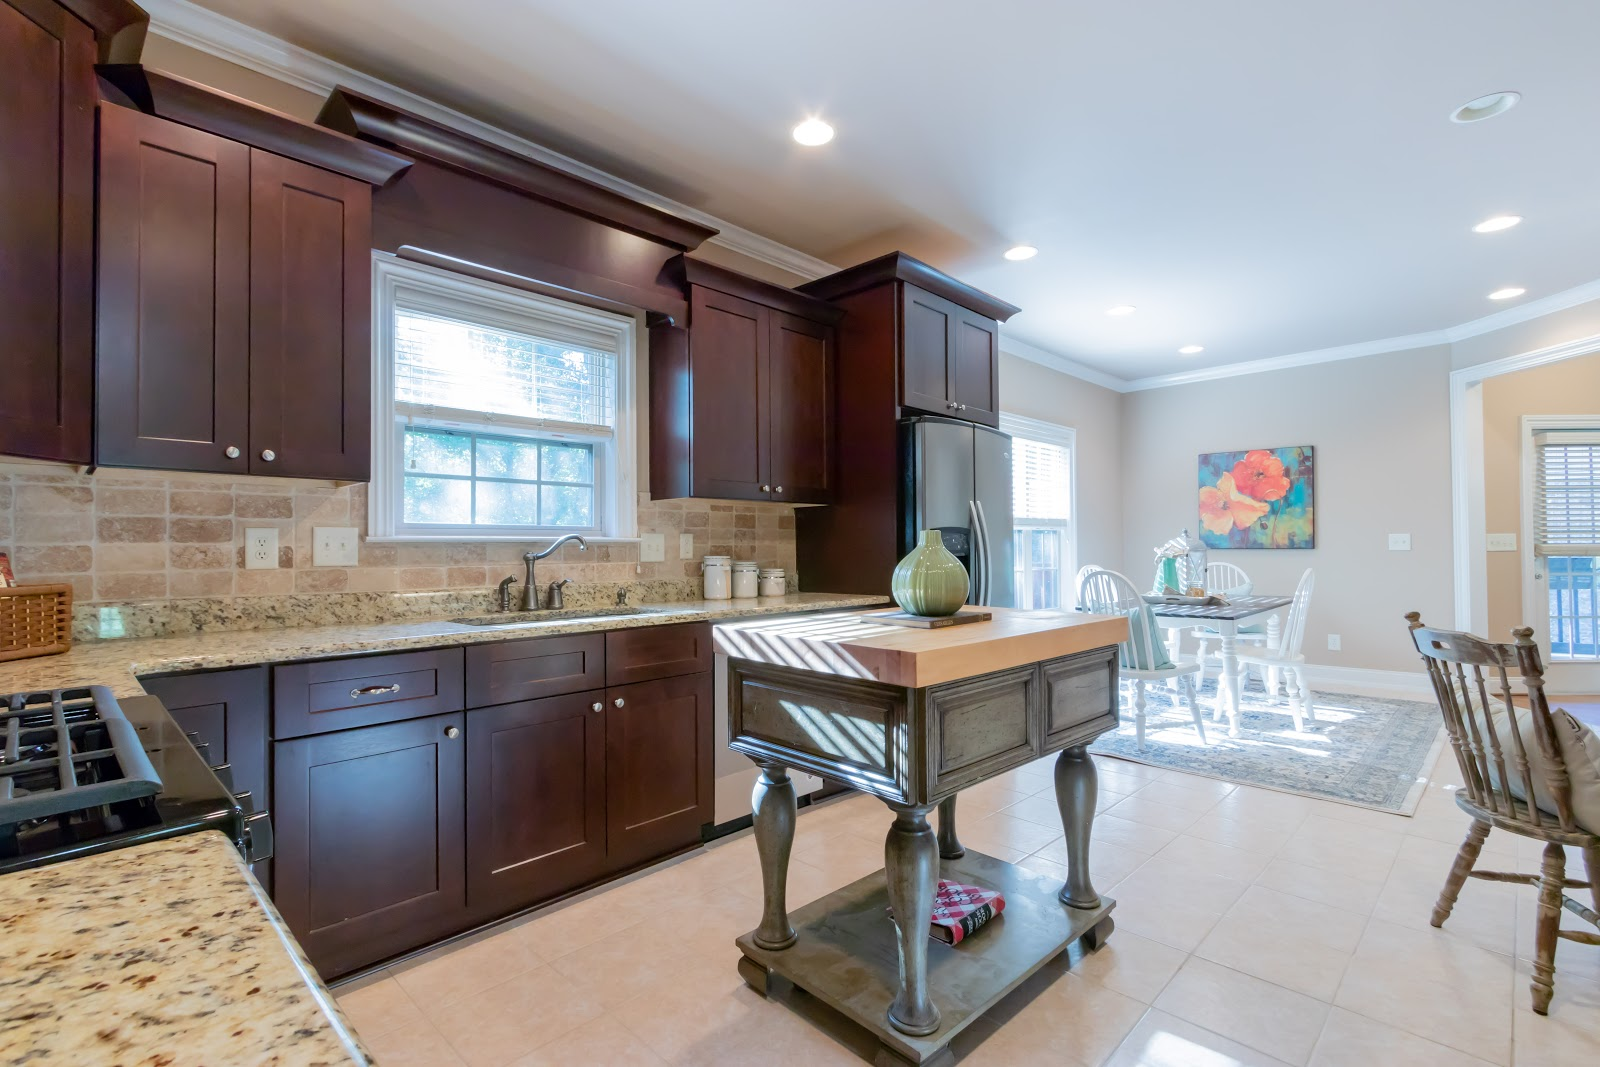 Define spaces with rugs is another part of how to stage your kitchen